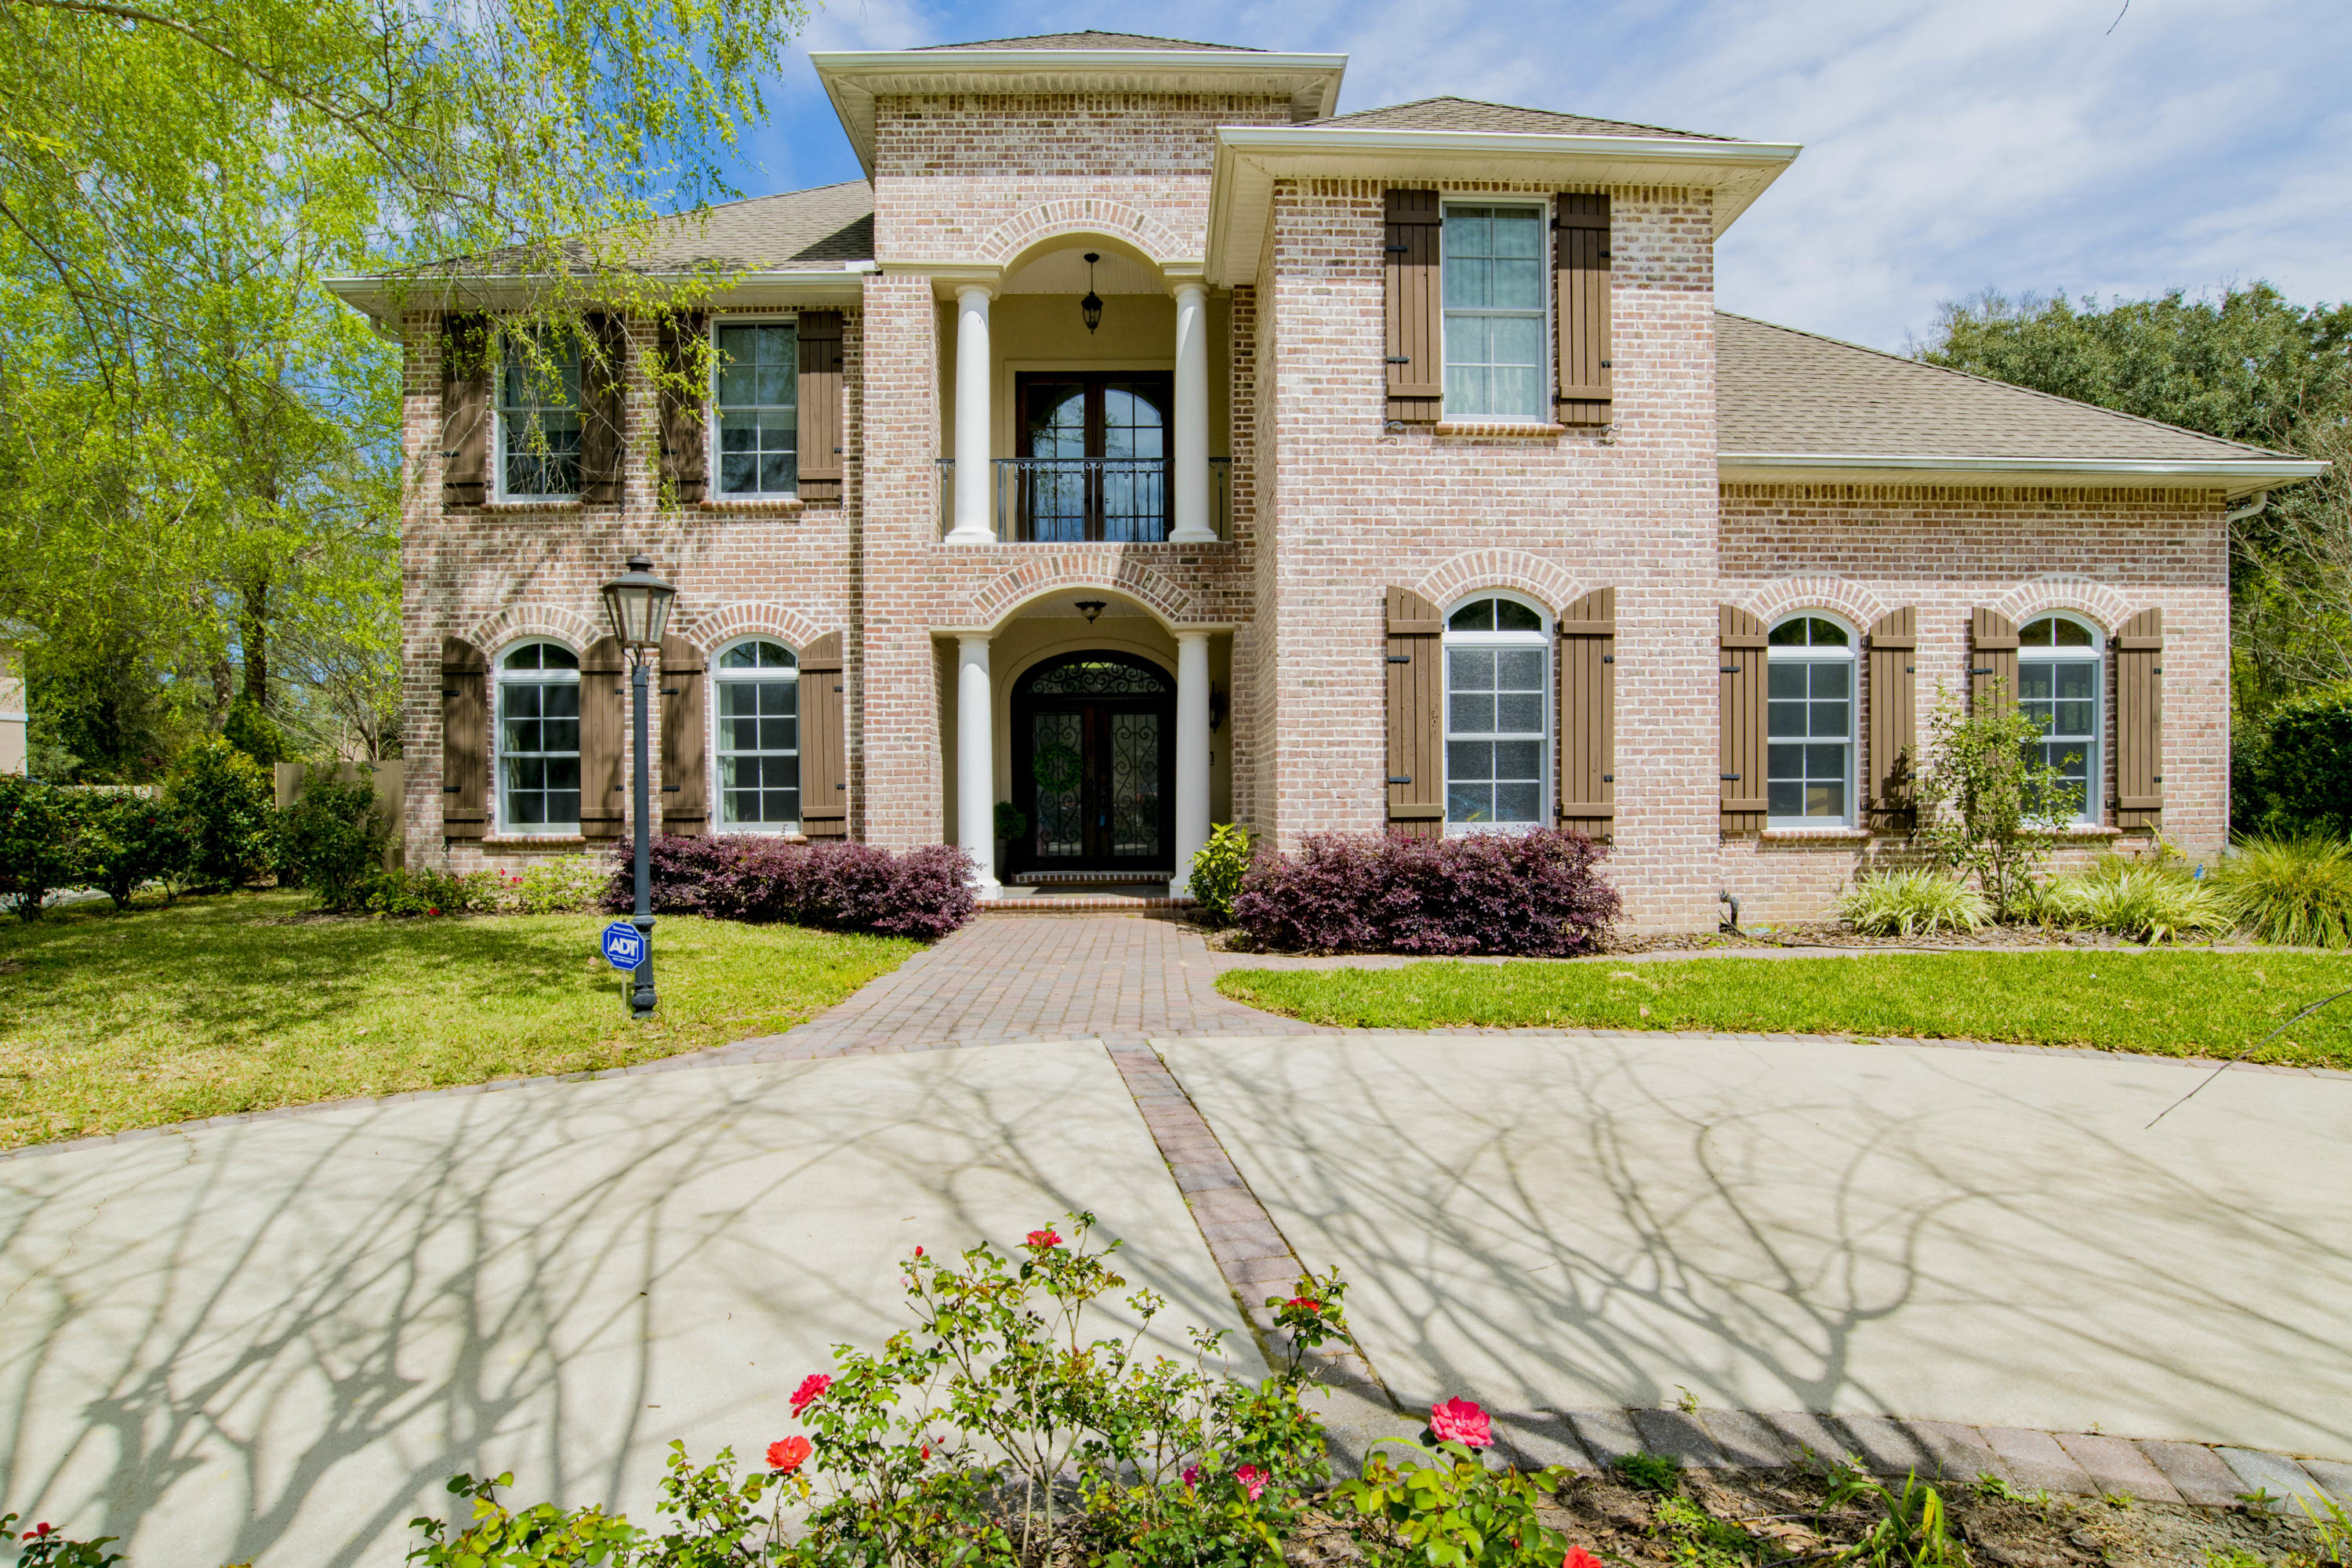 This custom built luxury home is conveniently located in Bohemia, an established desirable neighborh